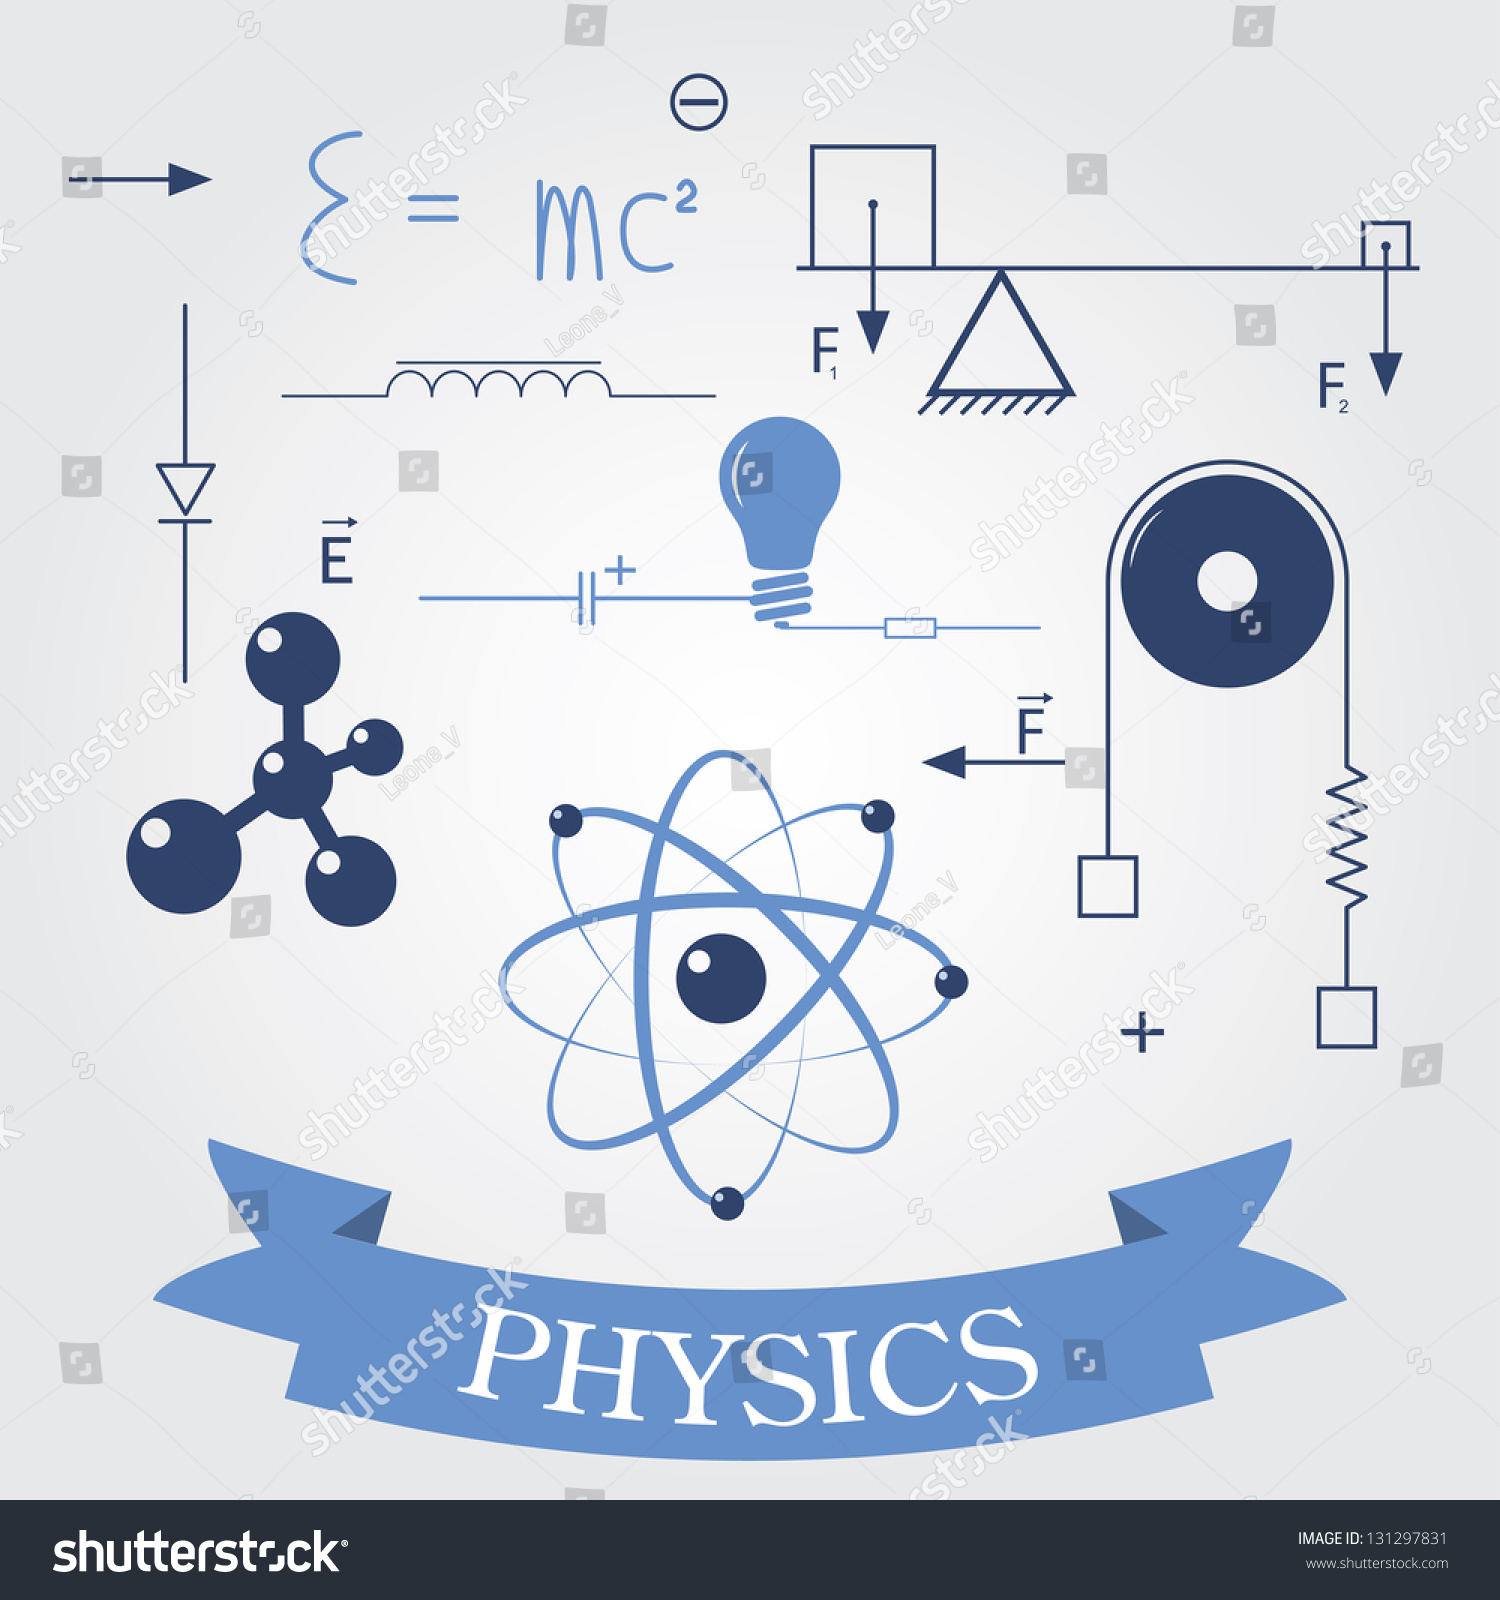 Symbols Of Physics Vector Elements For Design Eps8